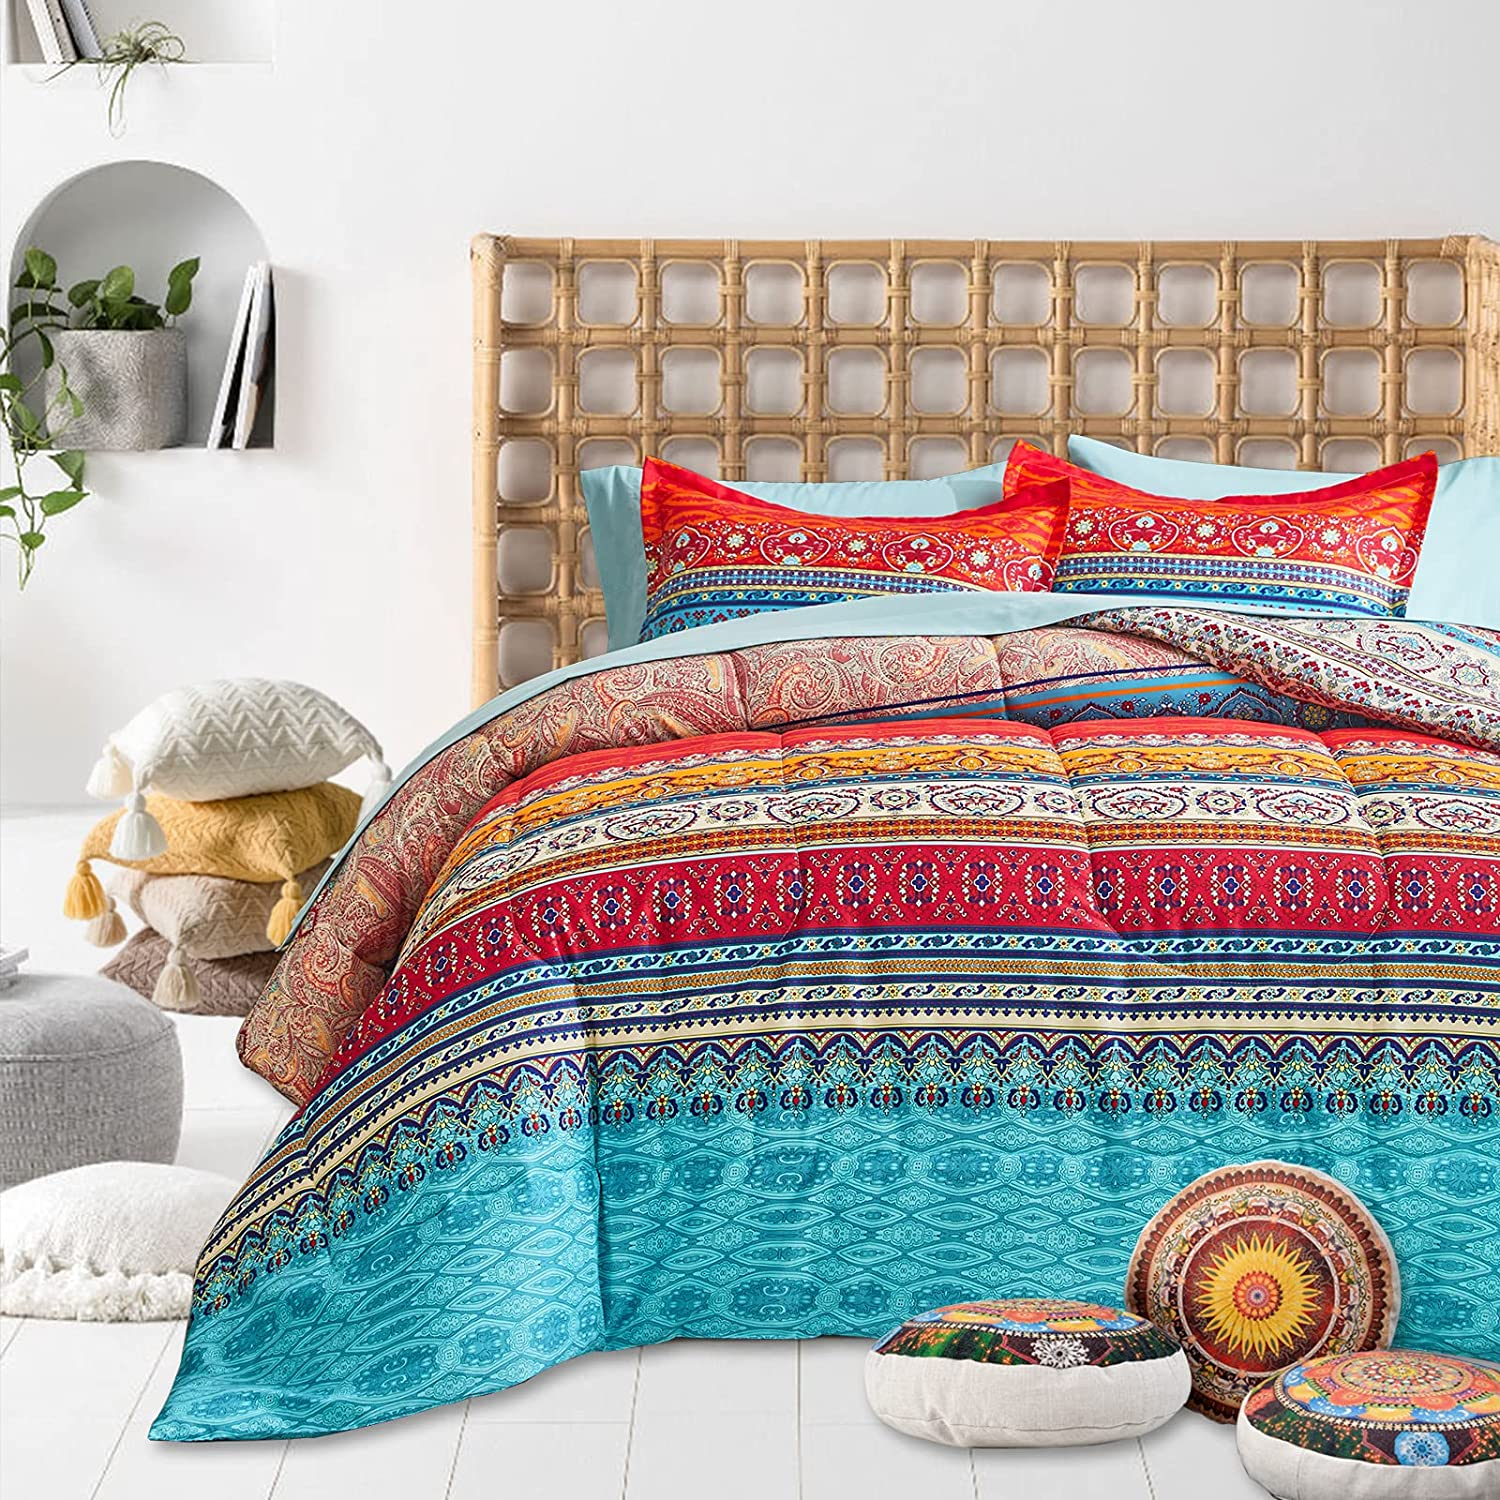 FlySheep Bohemian Tribal Style Comforter Twin Kids Charlotte Mall for Size Set All items free shipping